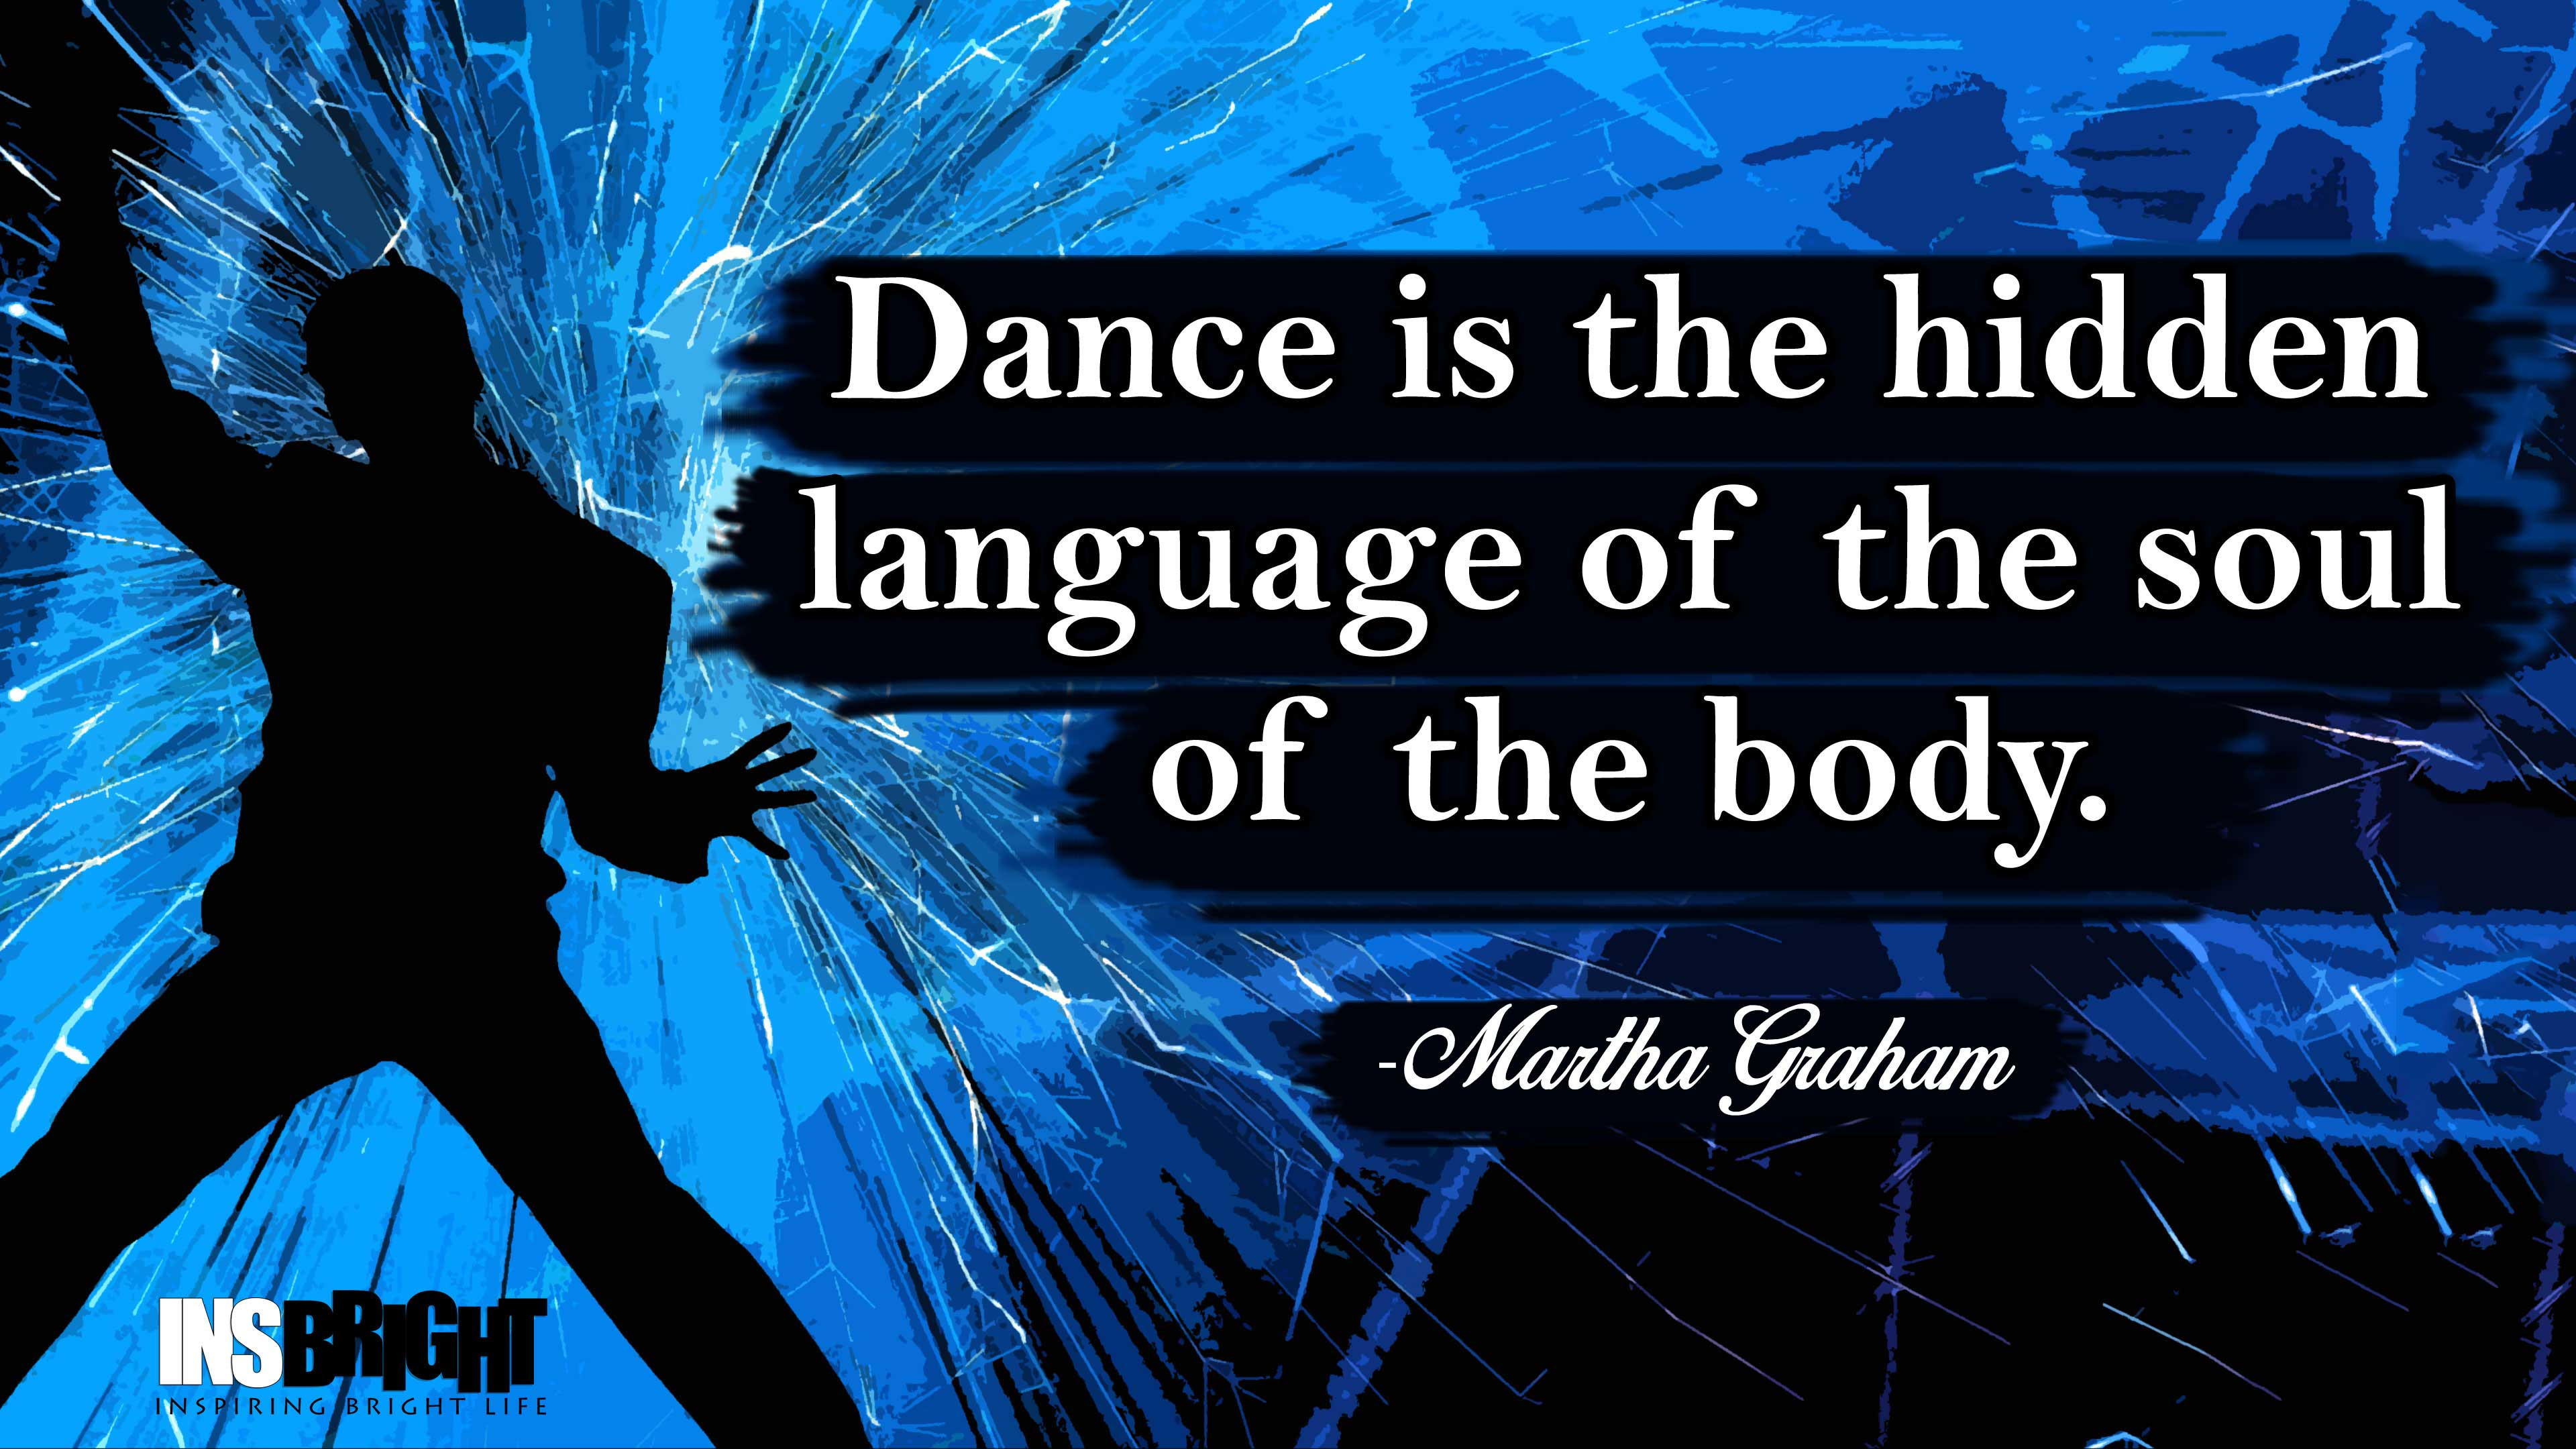 Inspirational Dance Quotes Entrancing 10 Inspirational Dance Quotes Imagesfamous Dancer  Insbright